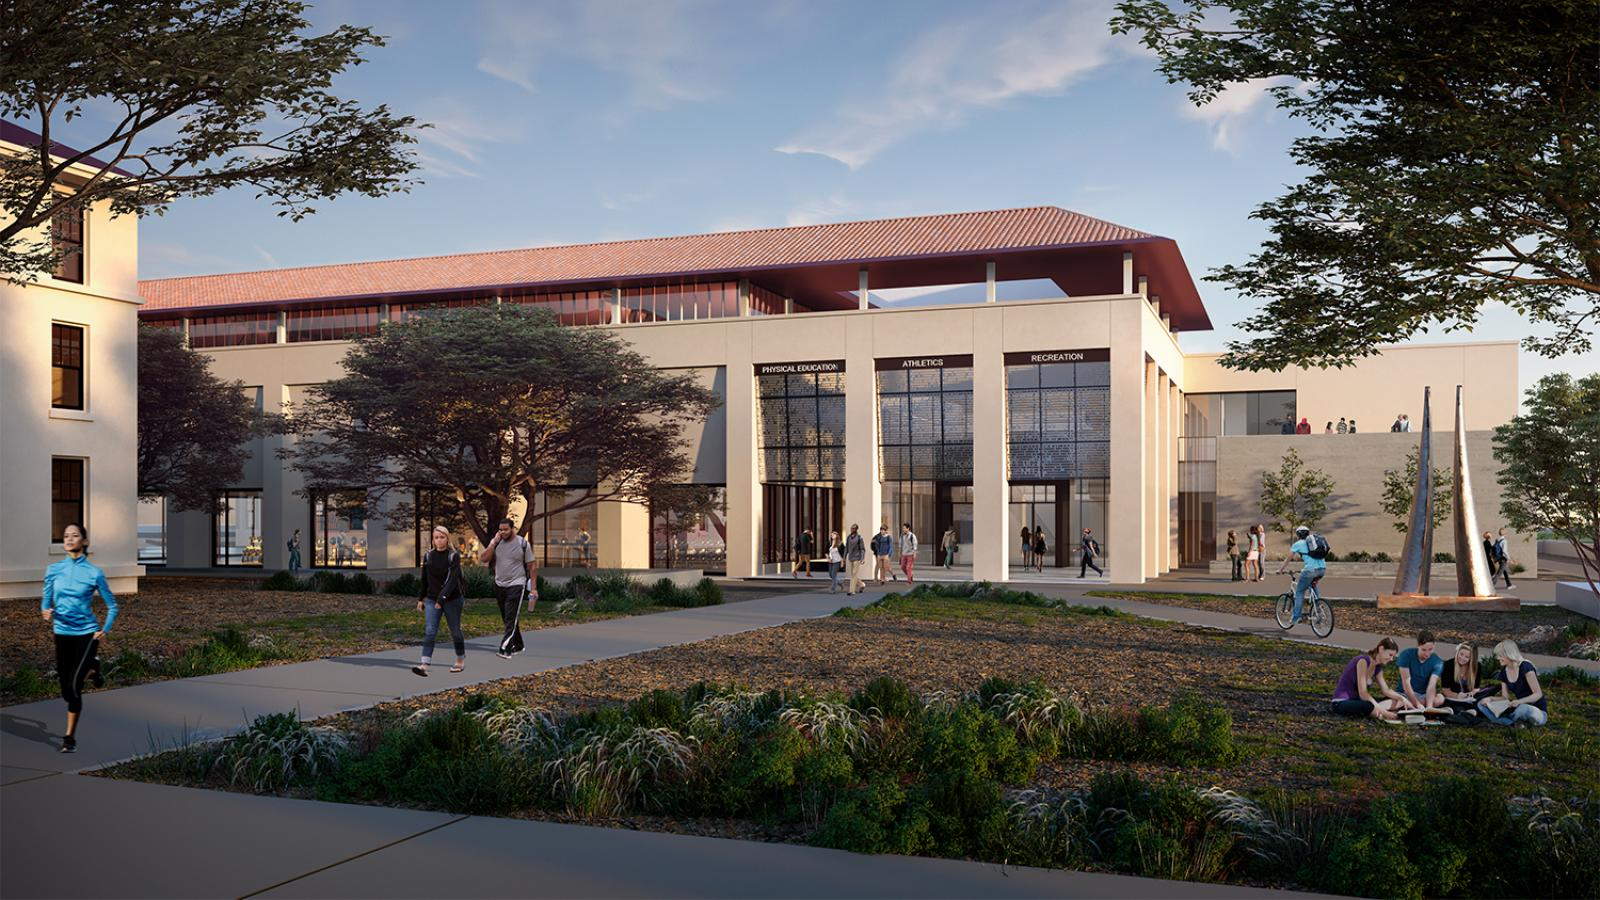 rendering of exterior of planned athletics and recreation center